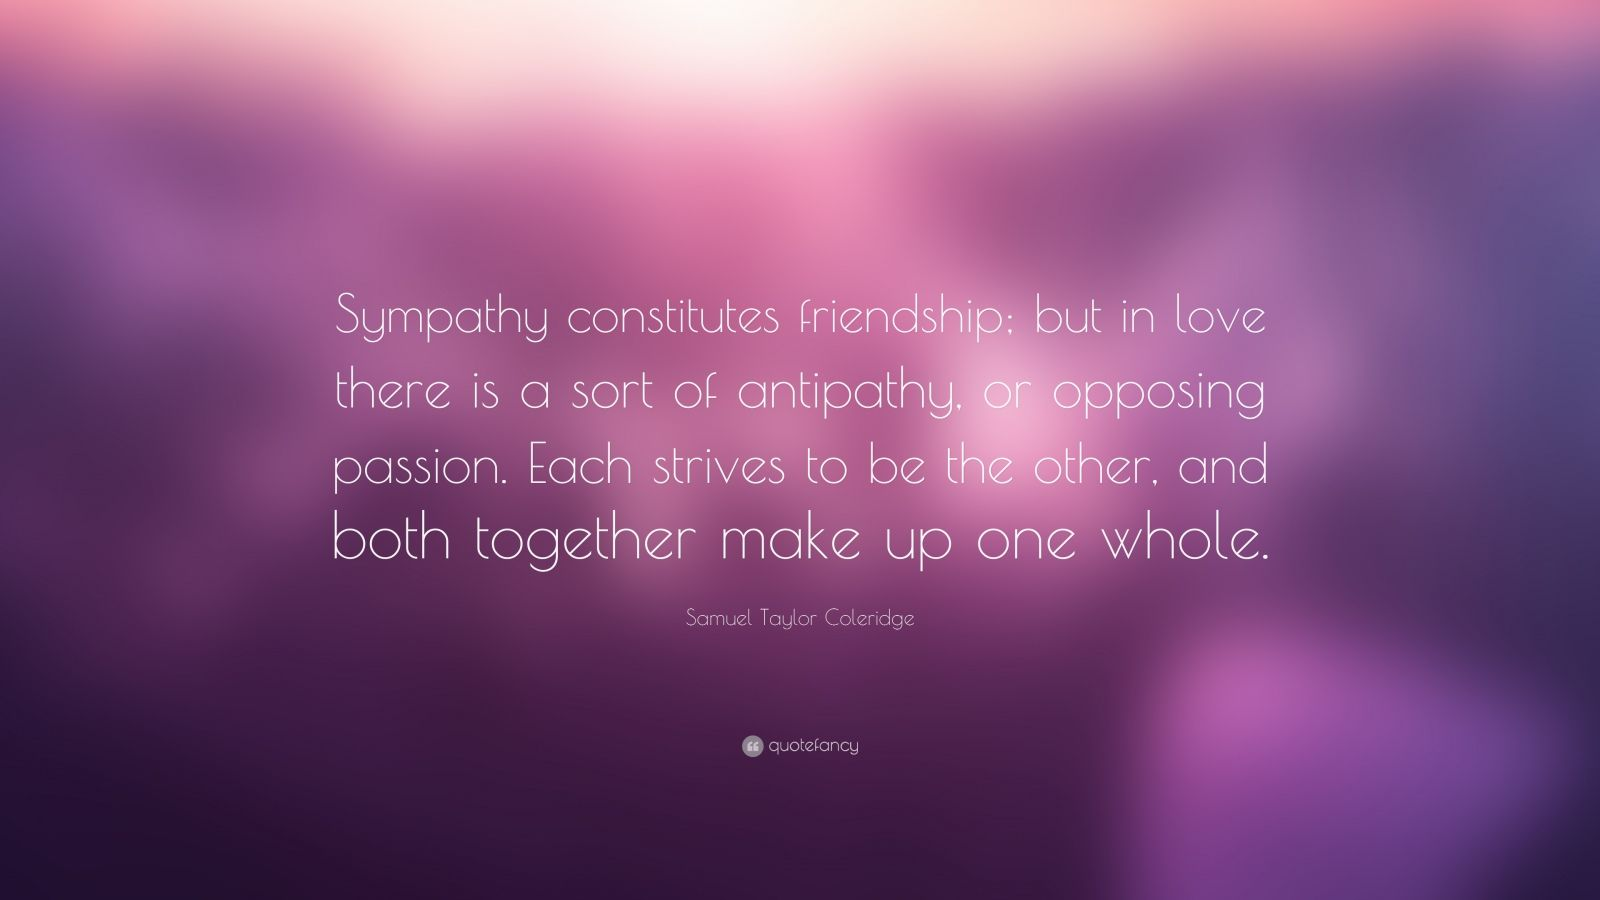 """Samuel Taylor Coleridge Quote: """"Sympathy constitutes friendship; but in love there is a sort of antipathy, or opposing passion. Each strives to be the other, and both together make up one whole."""""""